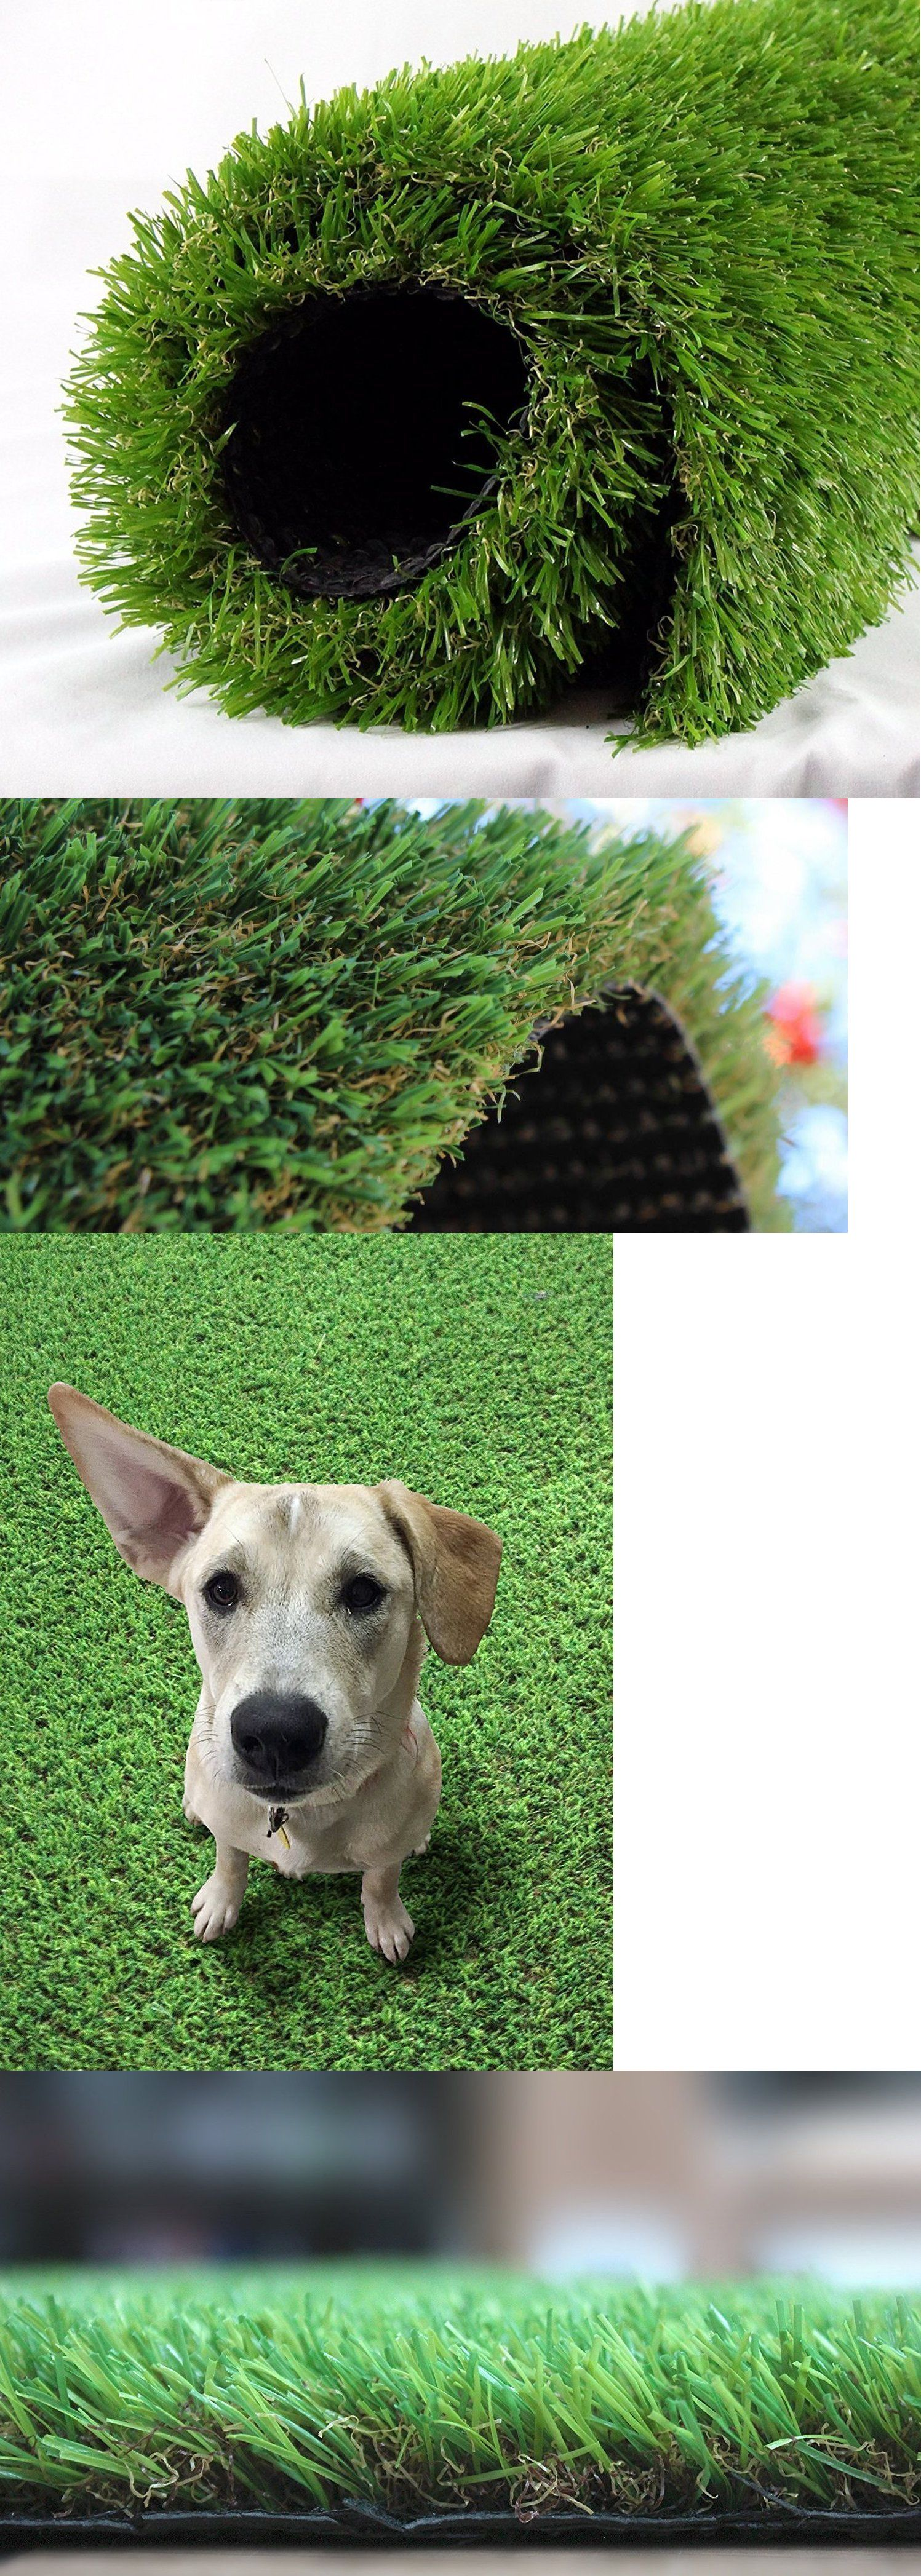 synthetic grass artificial grass turf mat lawn rug dogs carpet roll fake indoor outdoor